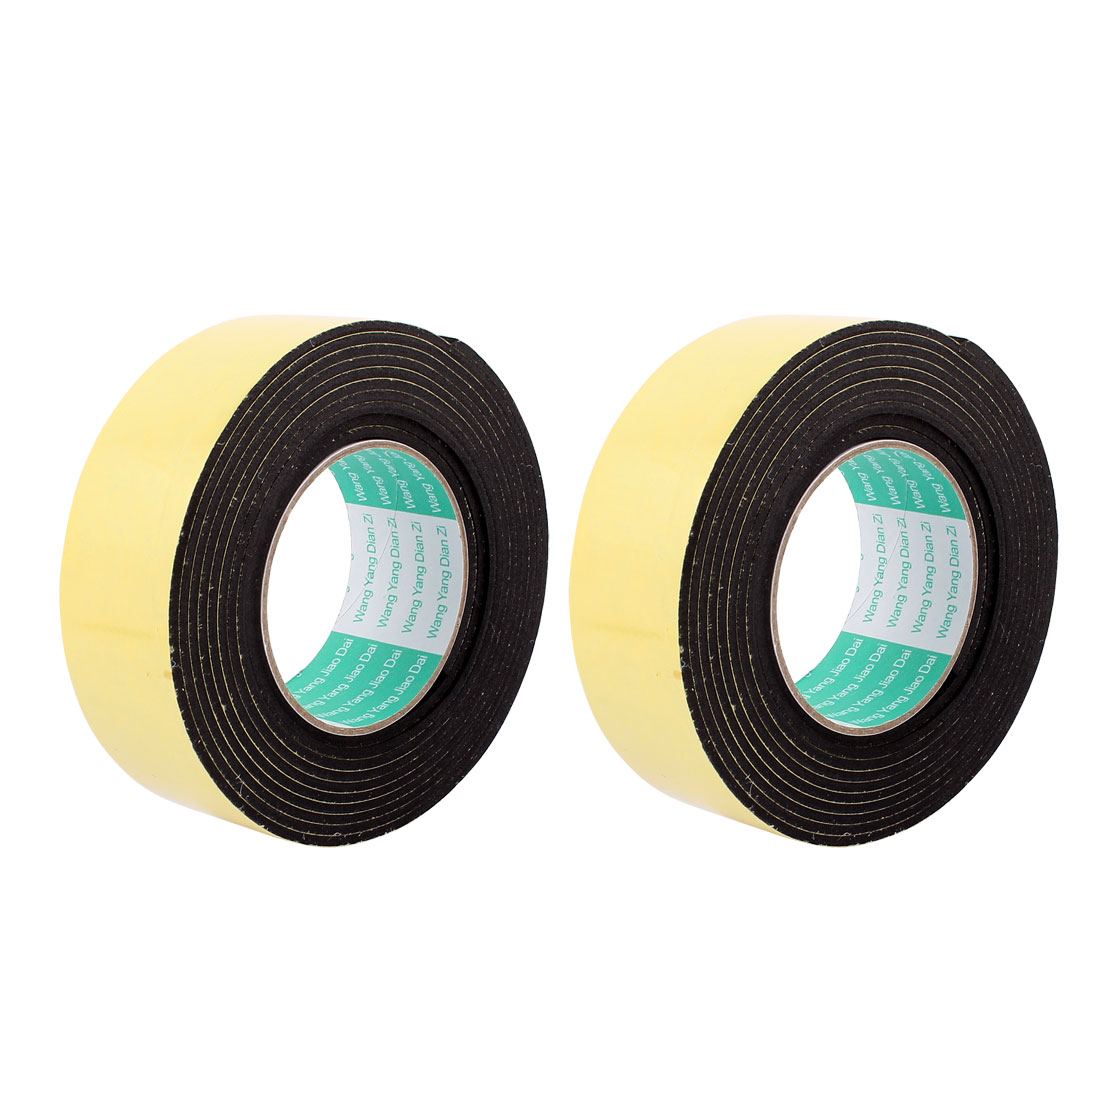 2 Pcs 45mmx4mm Single Sided Sponge Tape Adhesive Sticker Foam Glue Strip Sealing 3 Meters 10Ft